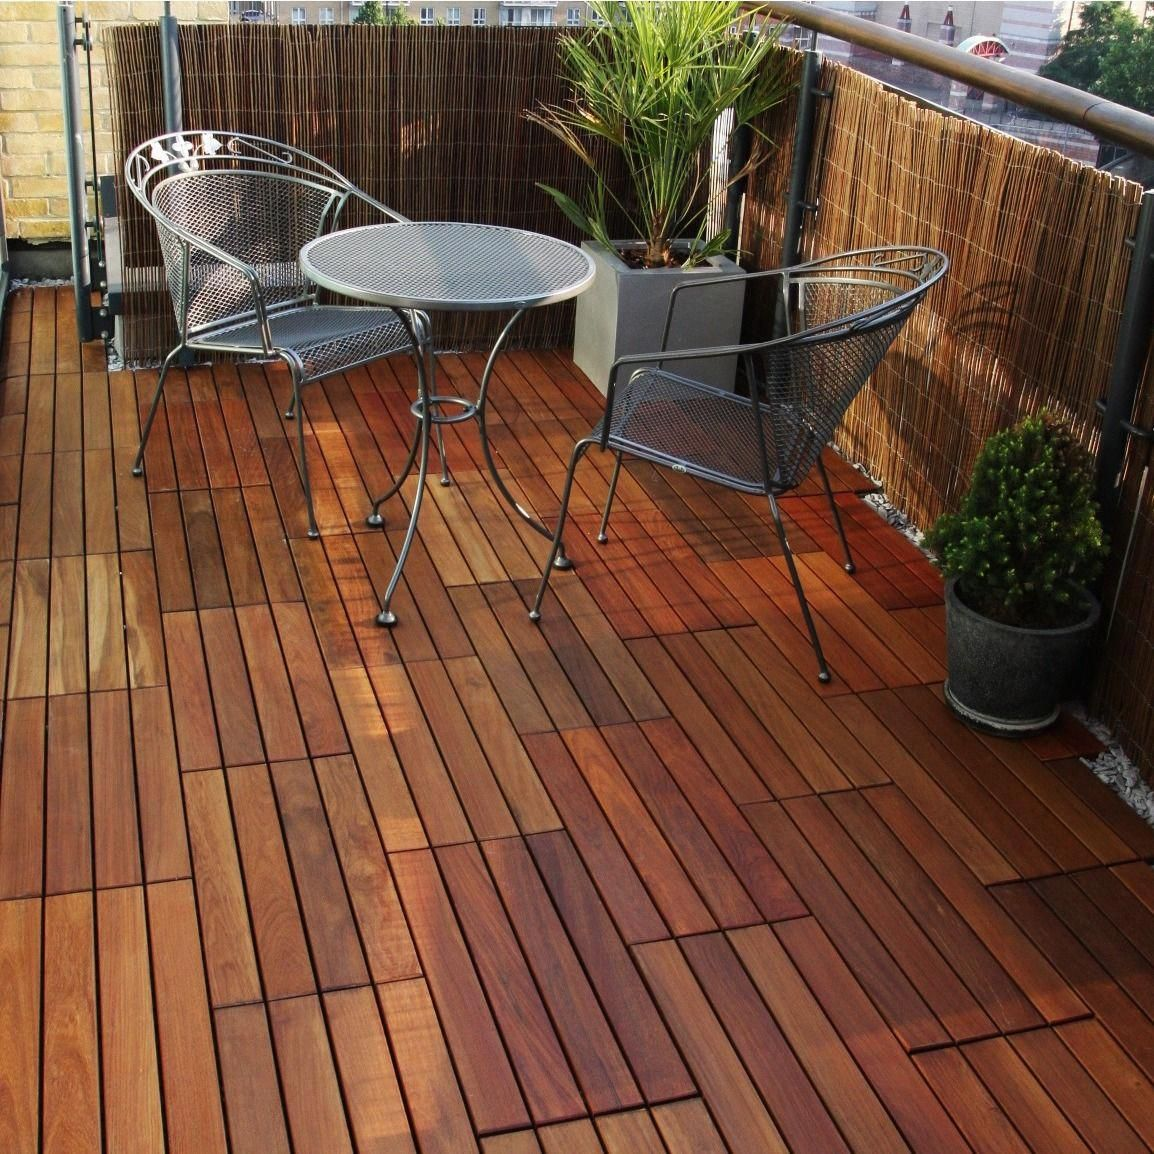 Ecodeck Deck Tiles Are A High Quality